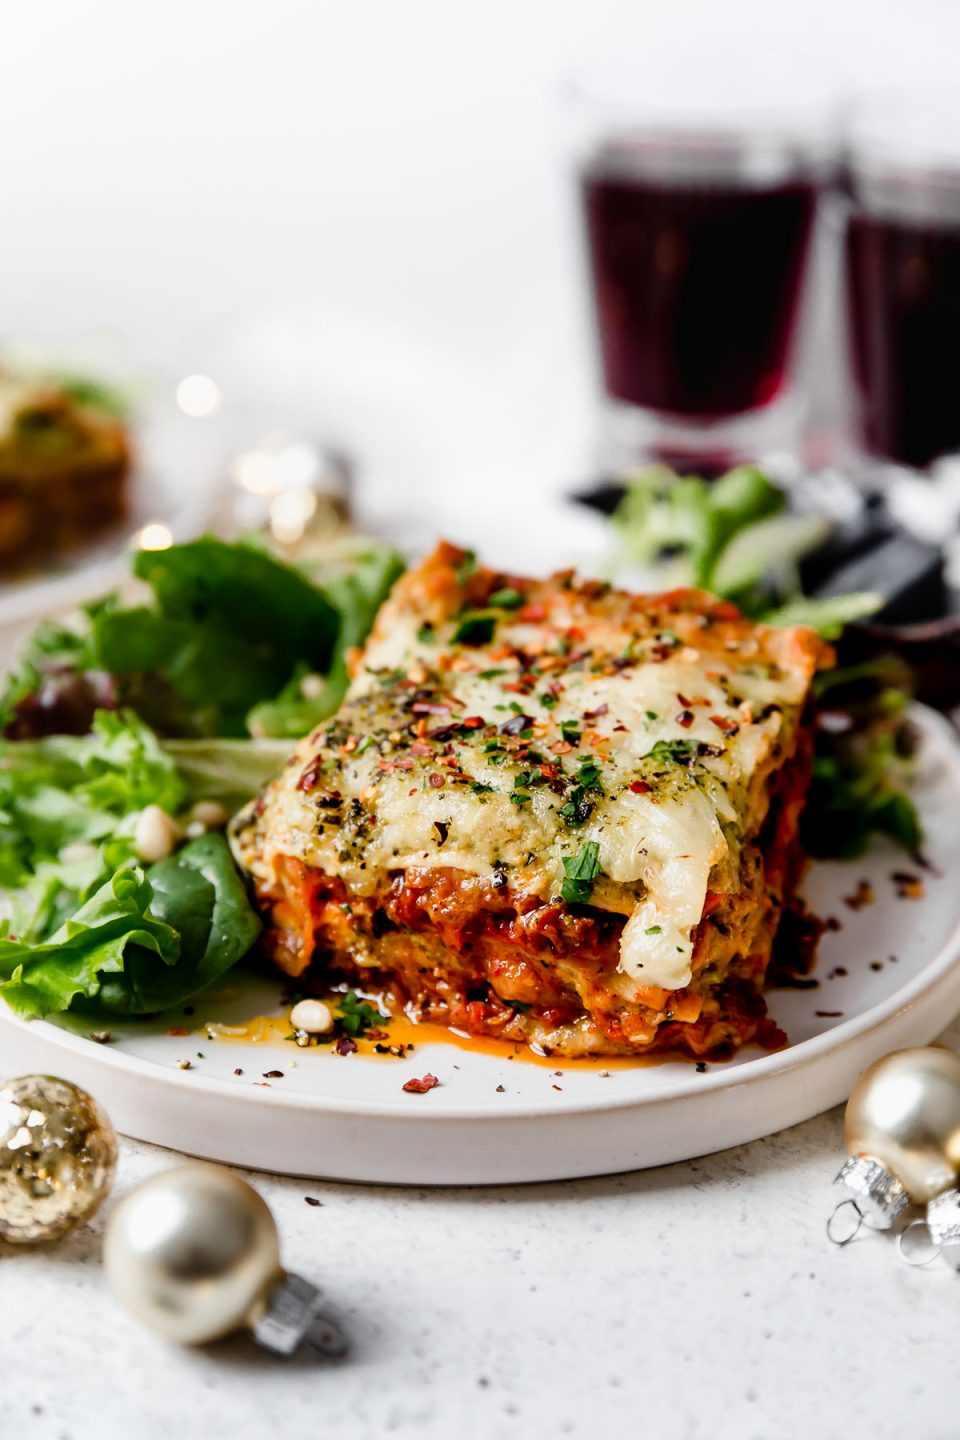 Christmas Eve Lasagna on a small white plate, atop a white surface surrounded by small Christmas ornaments & a glass of red wine.